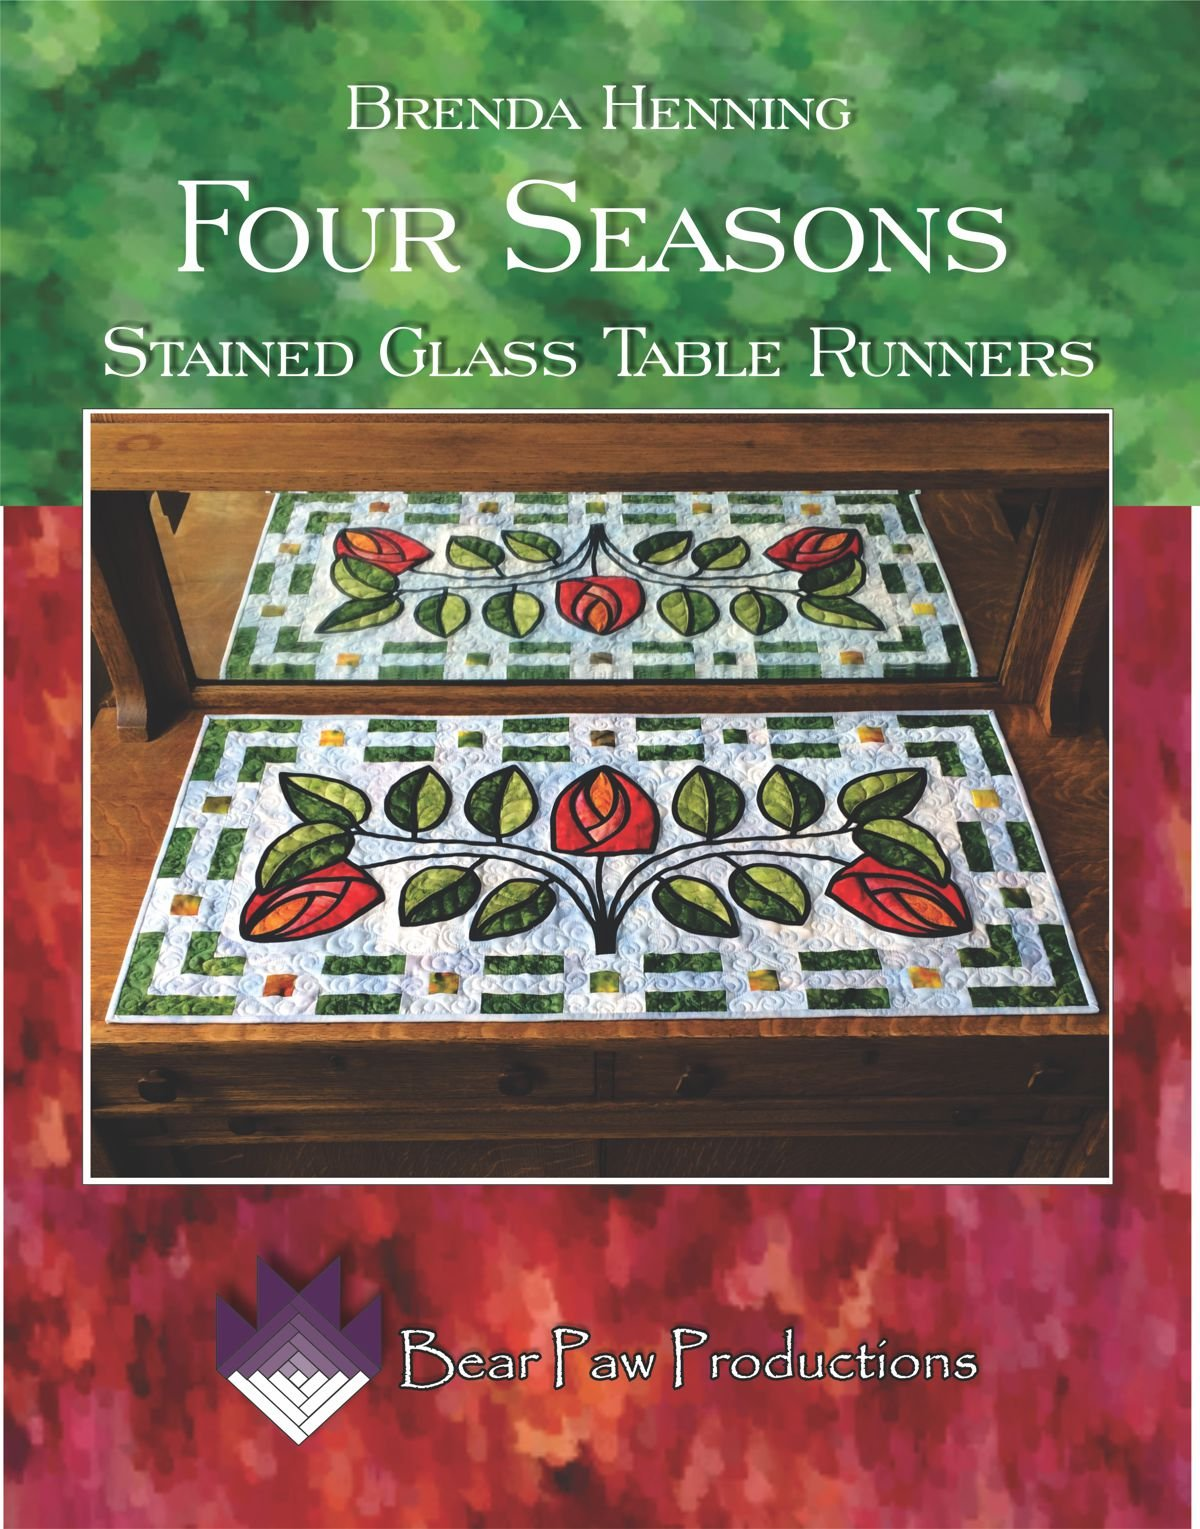 Four Seasons Stained Glass Table Runners